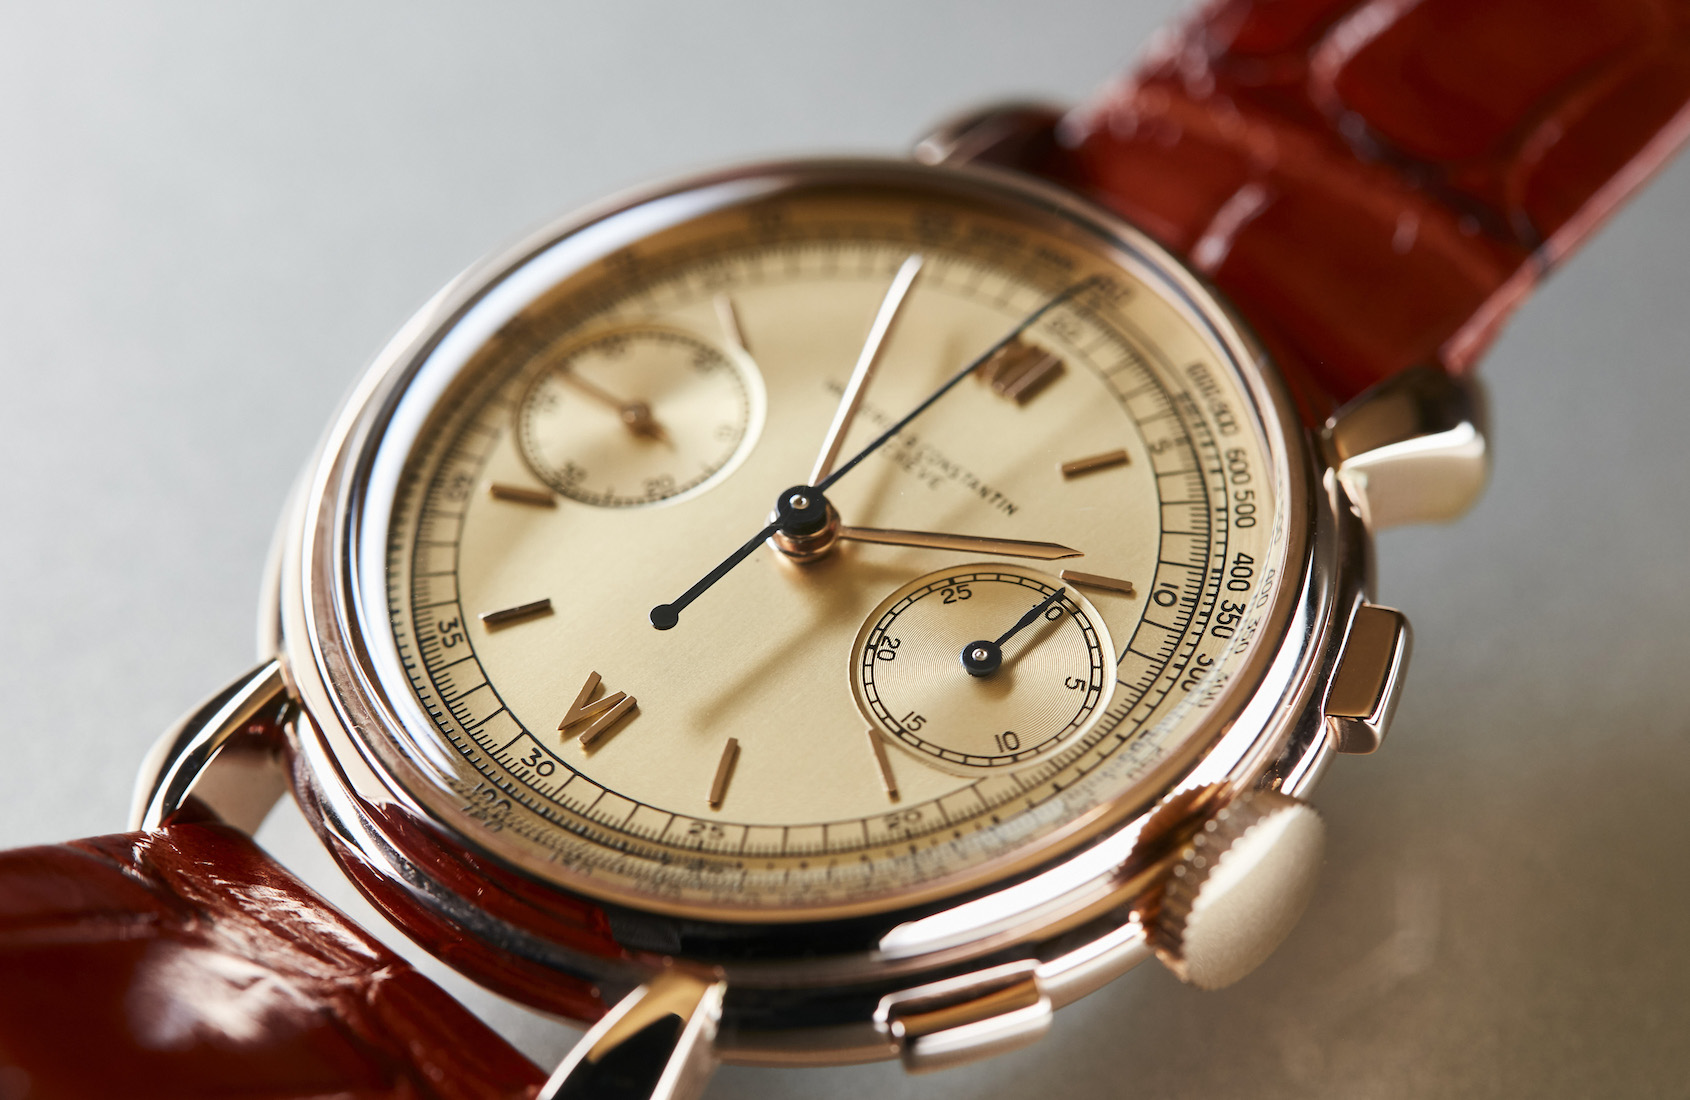 RECOMMENDED READING: Vacheron Constantin are removing the dangers of buying vintage watches